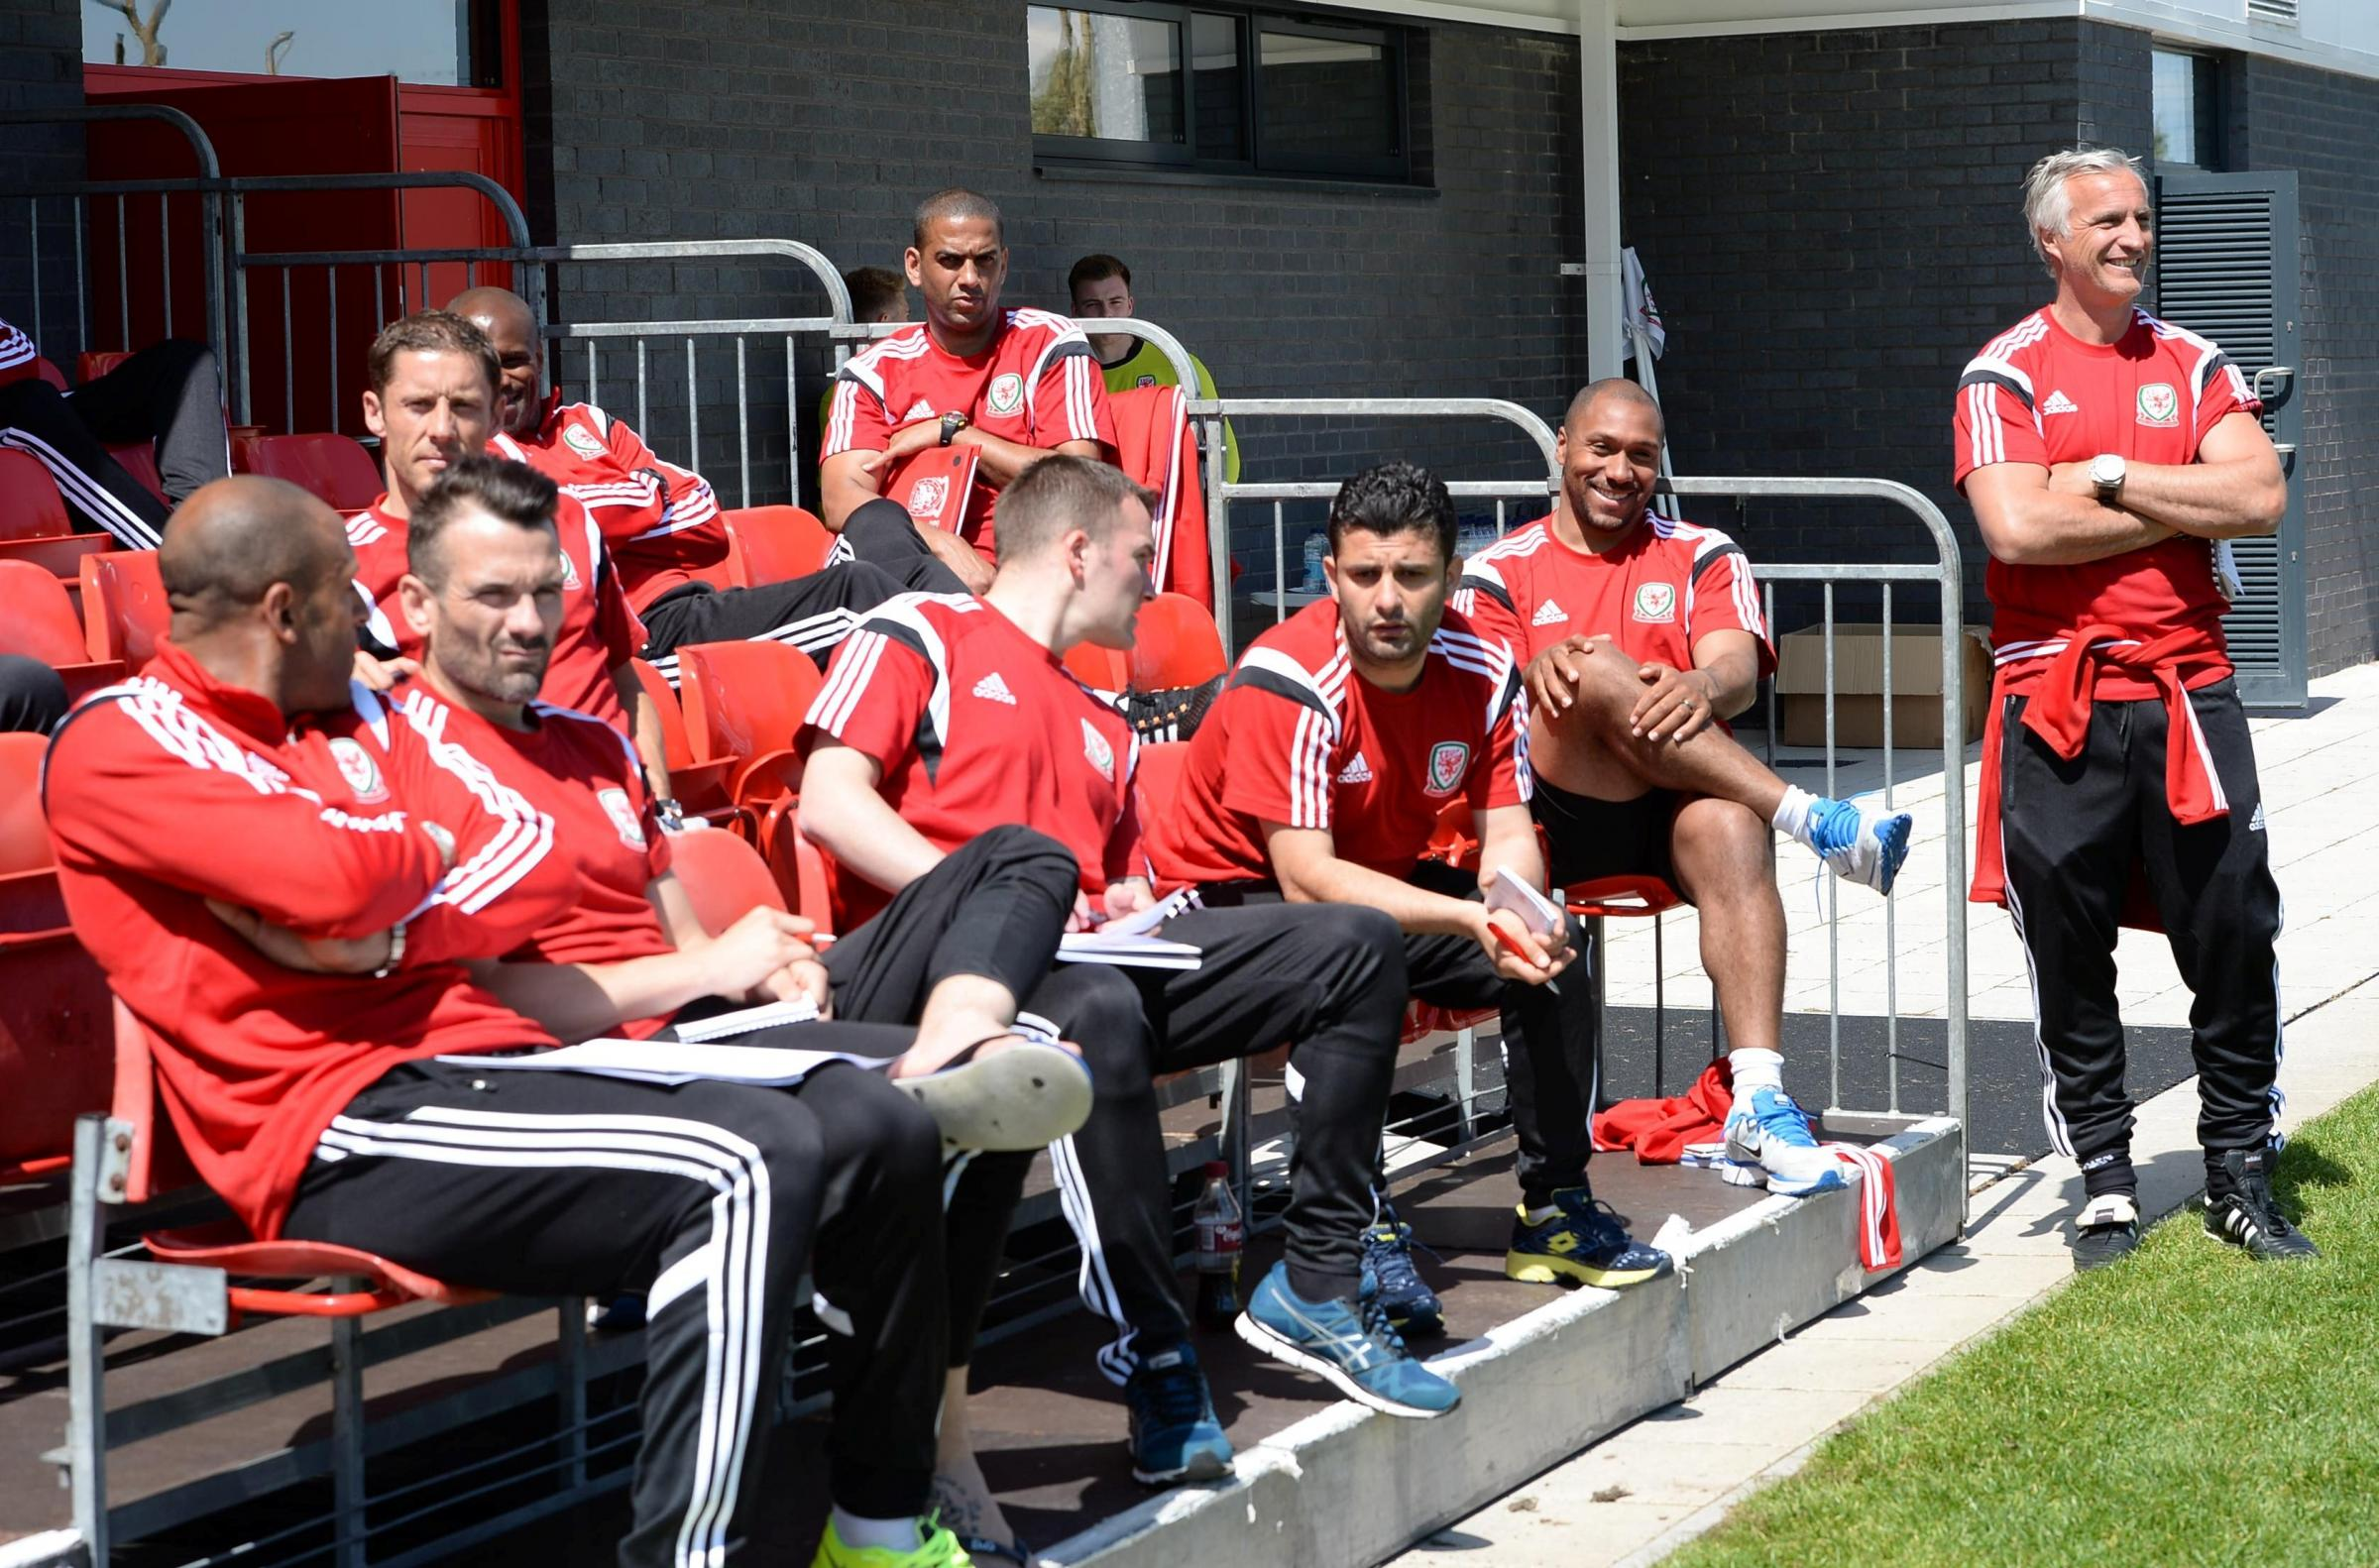 Argus sport goes behind the scenes at Dragon Park